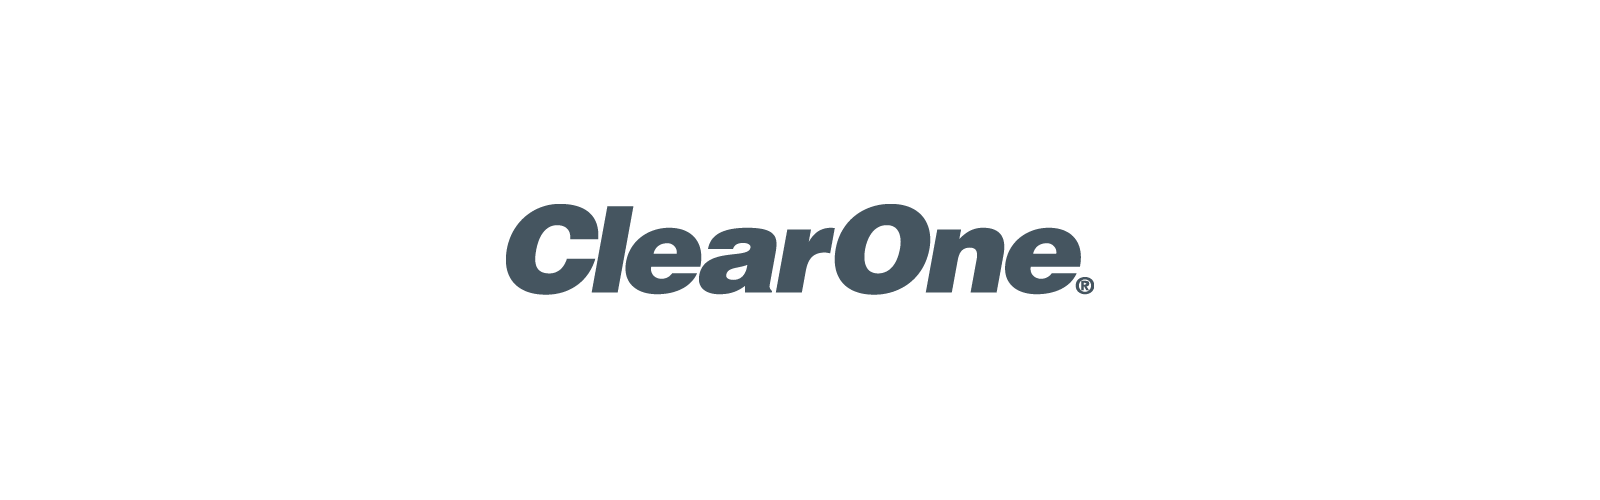 clear one logo 1600x500